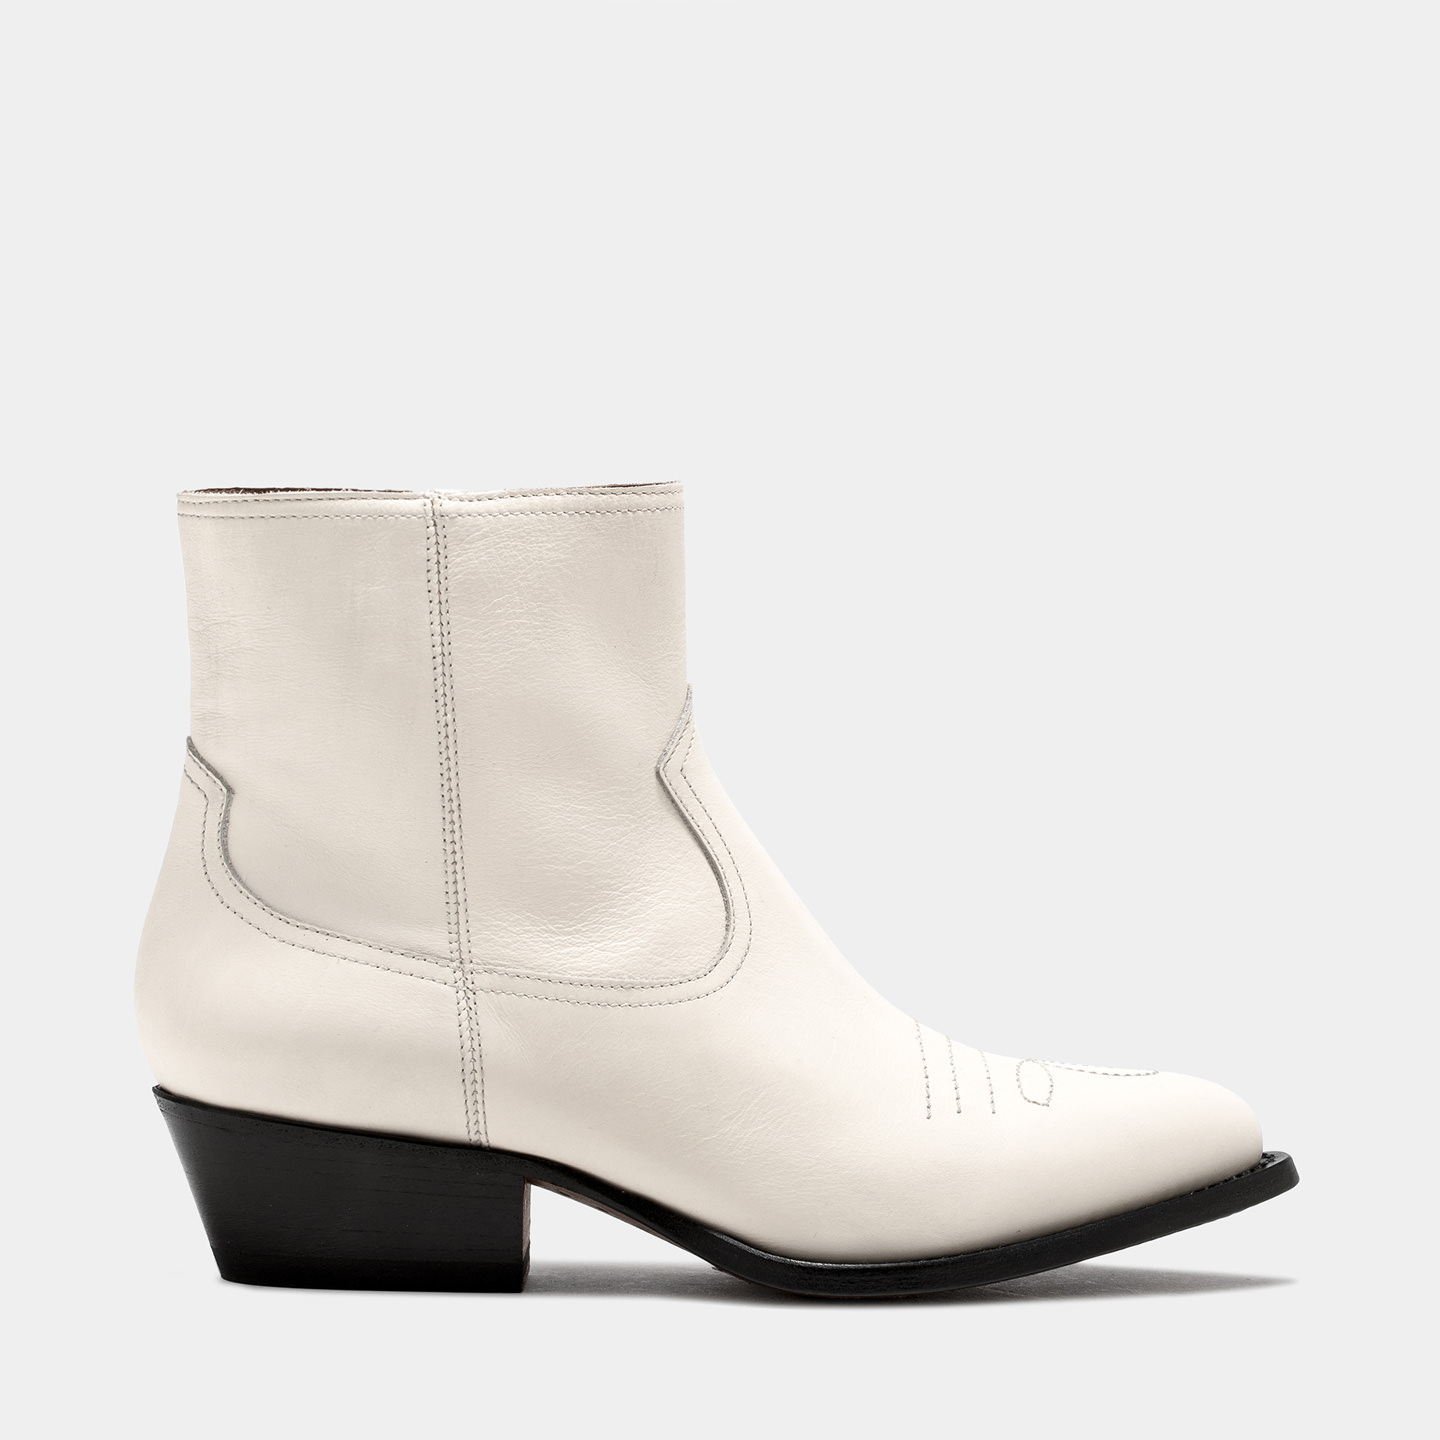 BUTTERO: TRES DURANGO BOOTS IN WHITE LEATHER